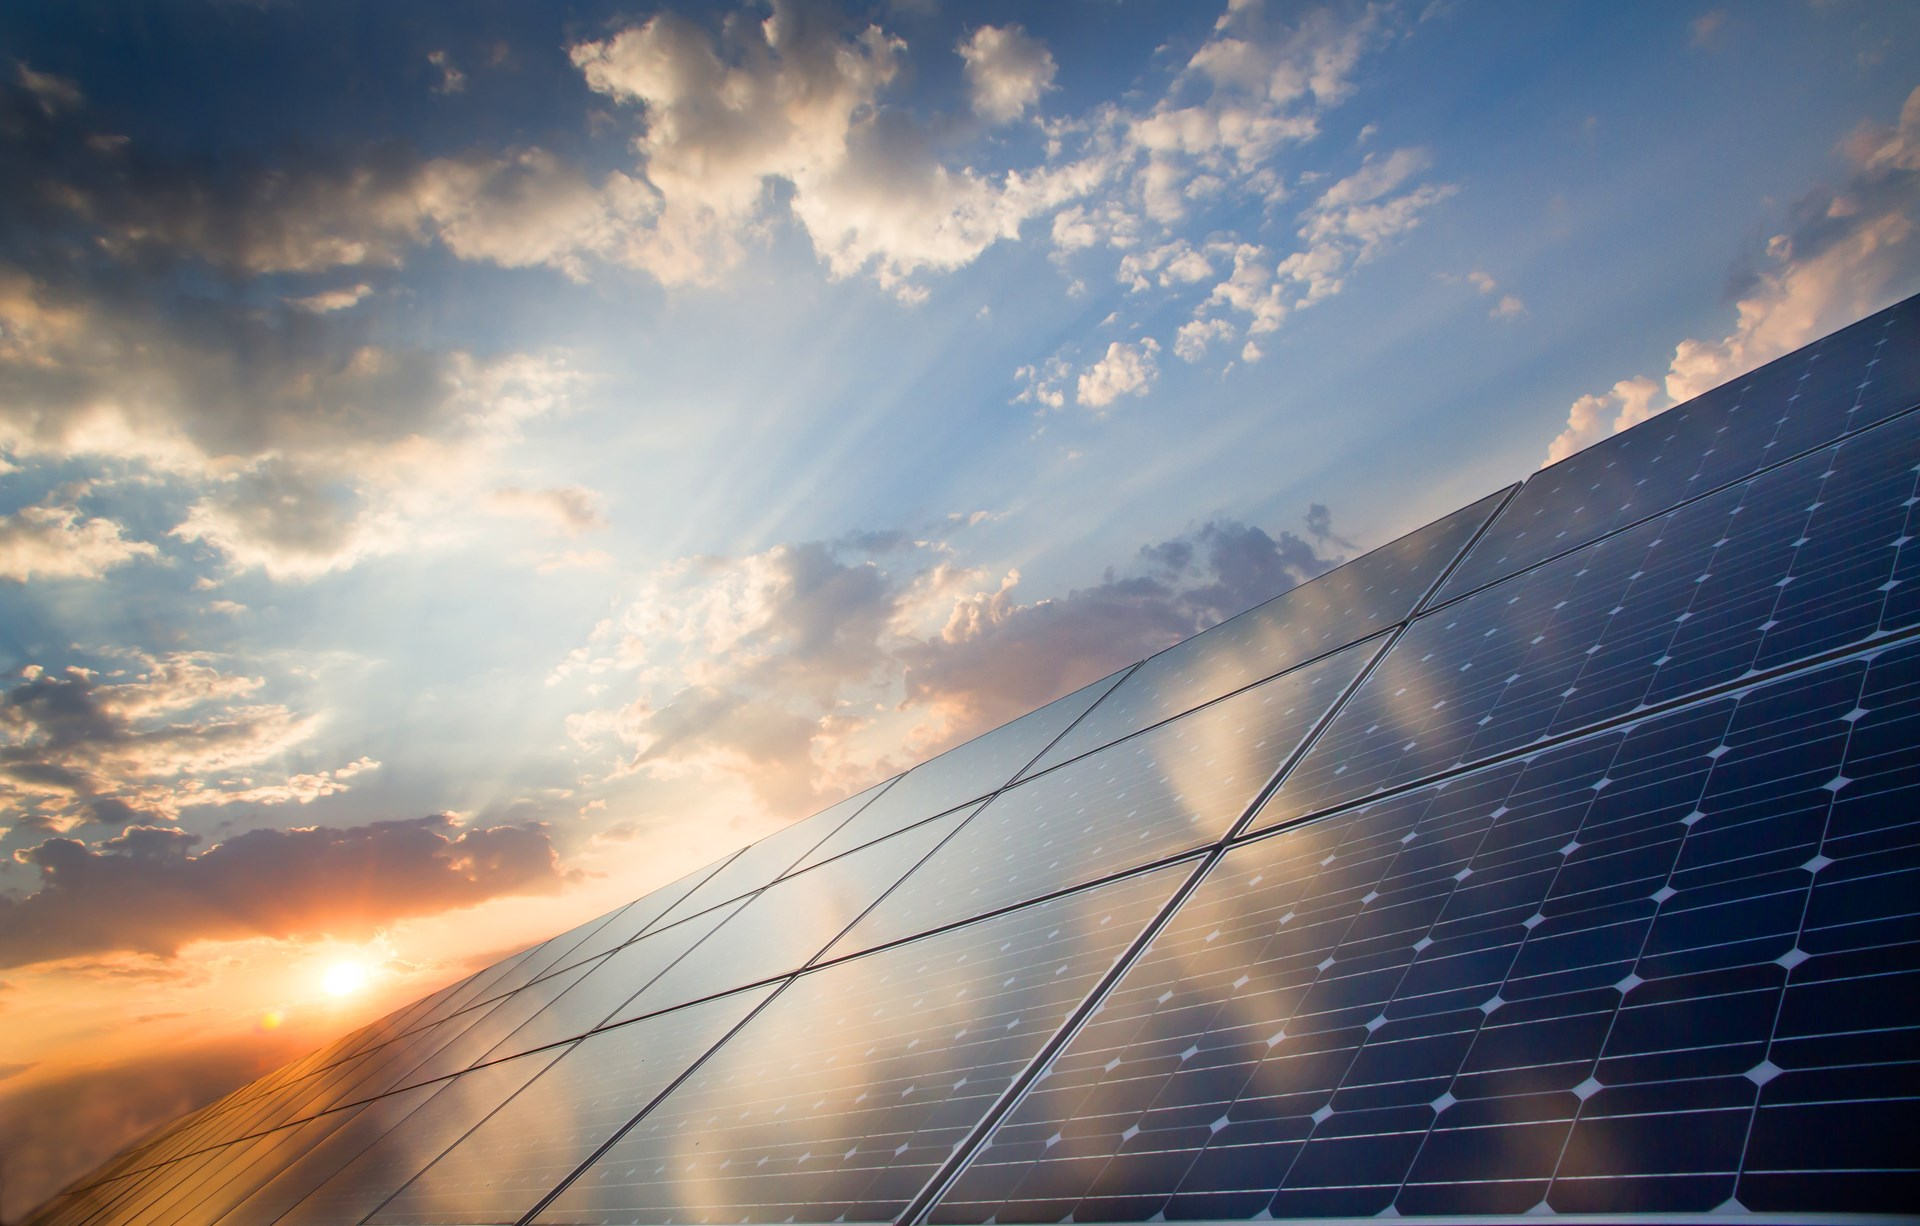 We're Wasting Resources Making Solar Panels in America - Foundation